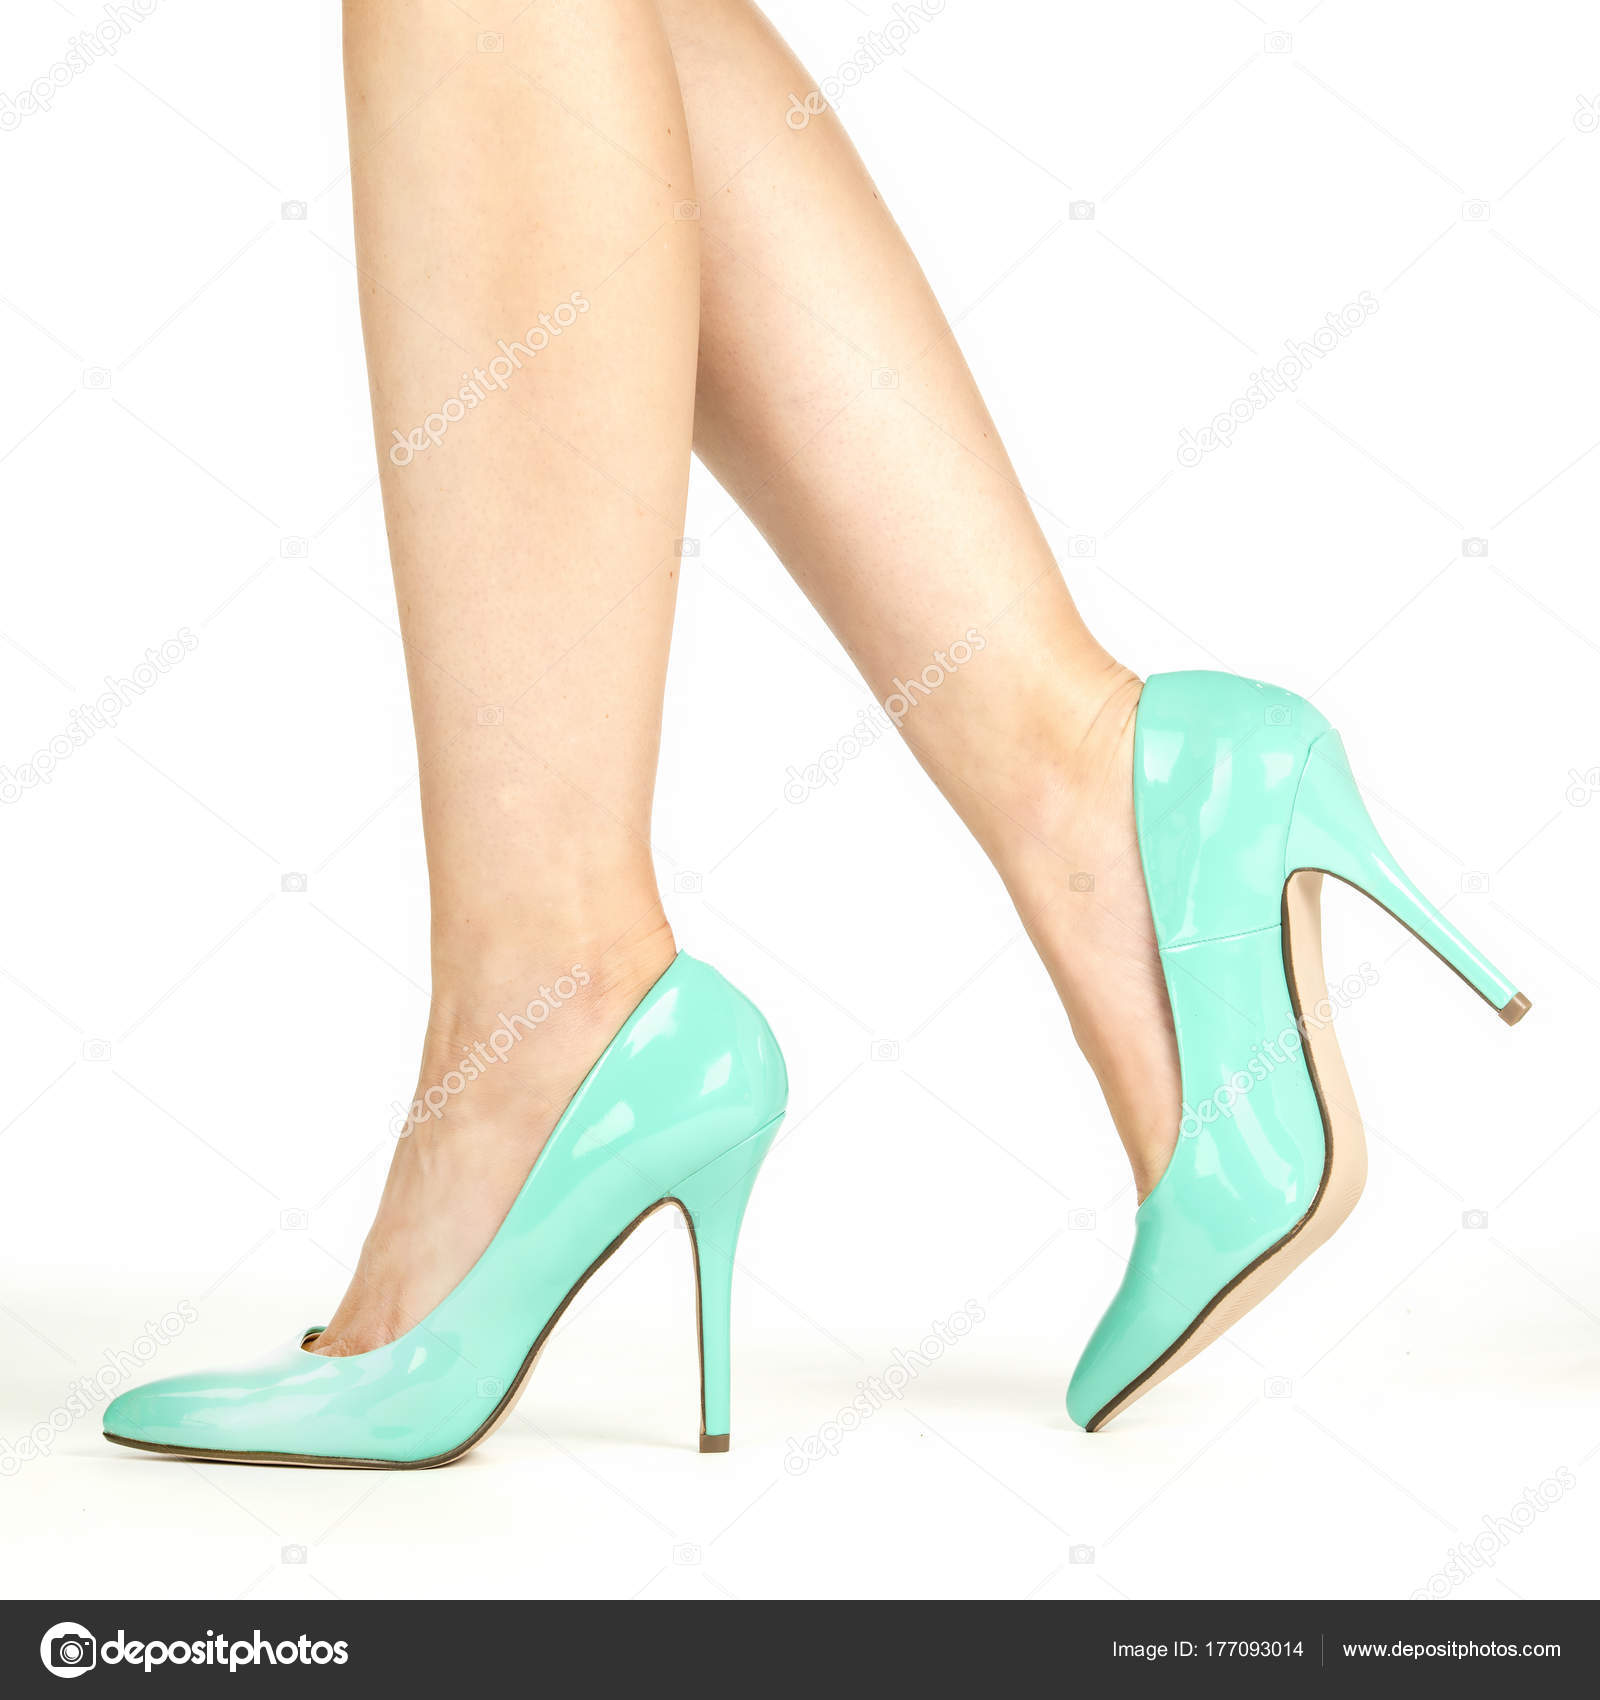 new style 25b22 15948 depositphotos 177093014-stock-photo-female-legs-in-turquoise-high.jpg